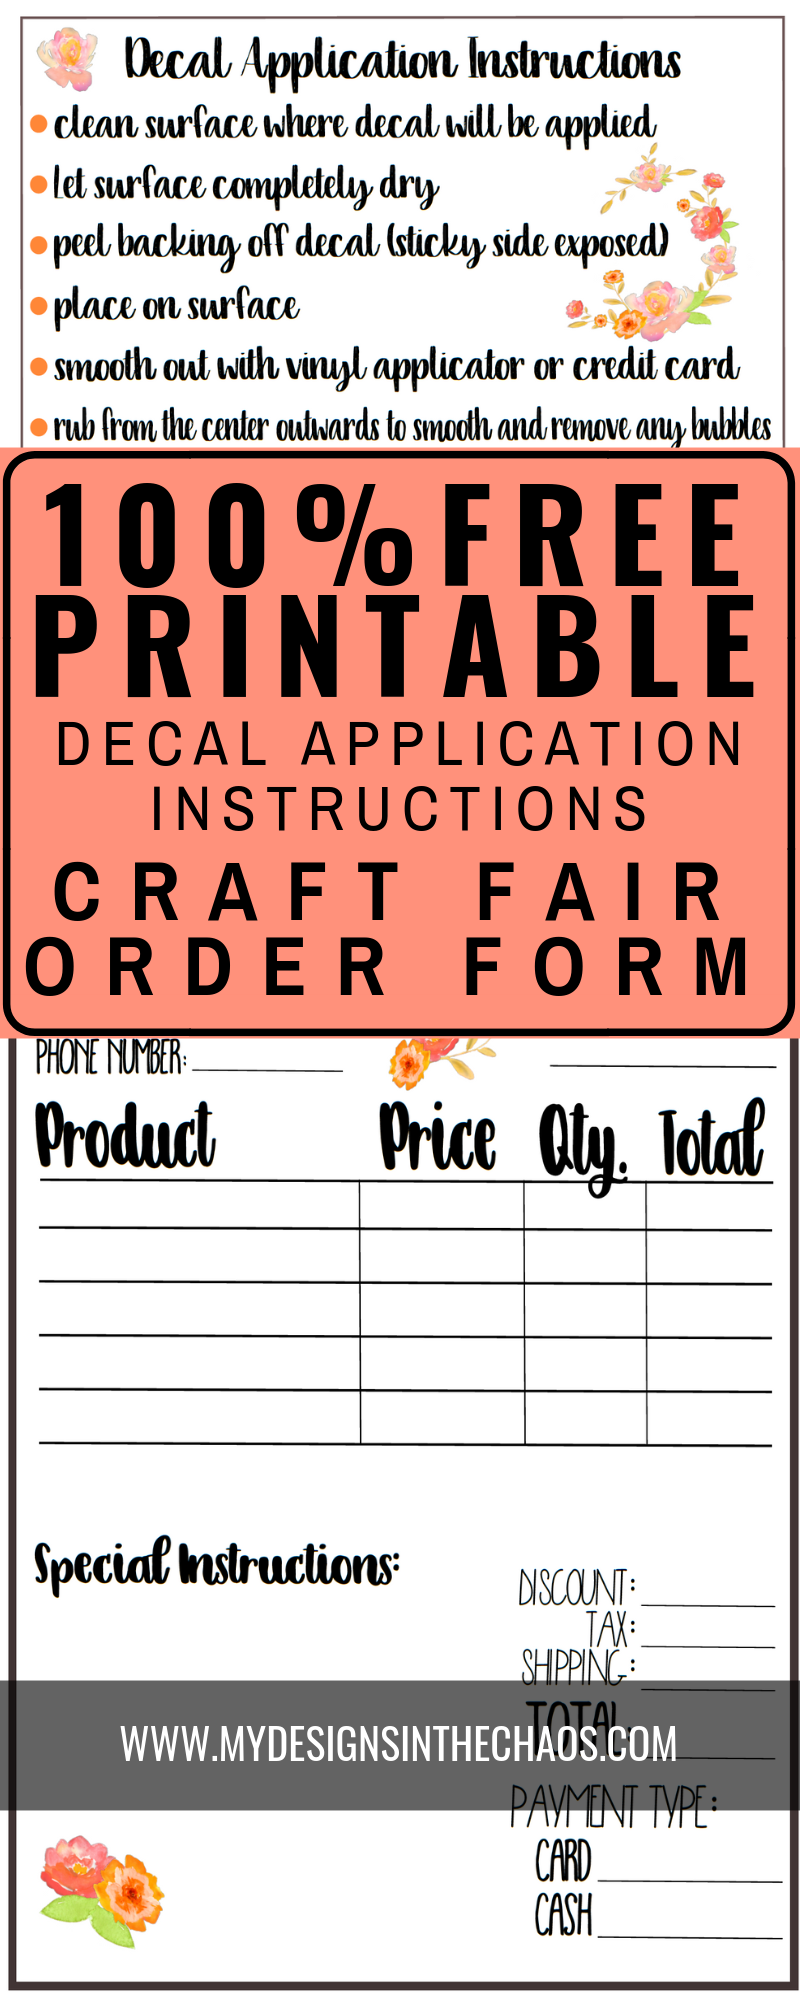 Decal Application Instructions Printable | Free printables ...